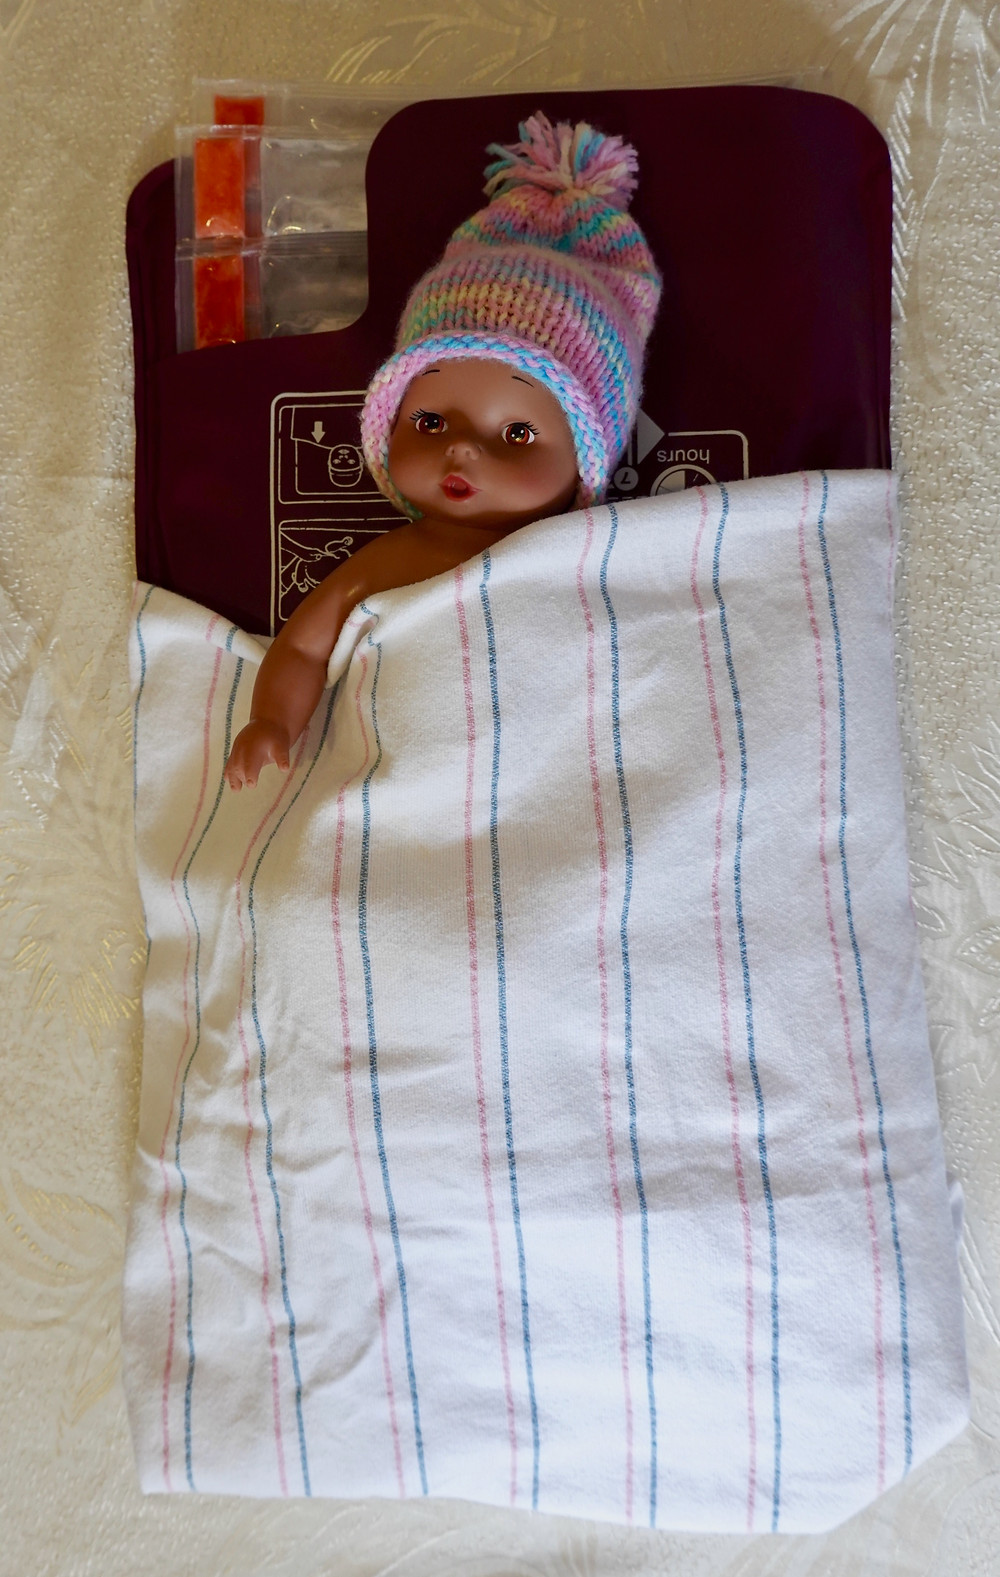 Doll on LBNL infant warming mat